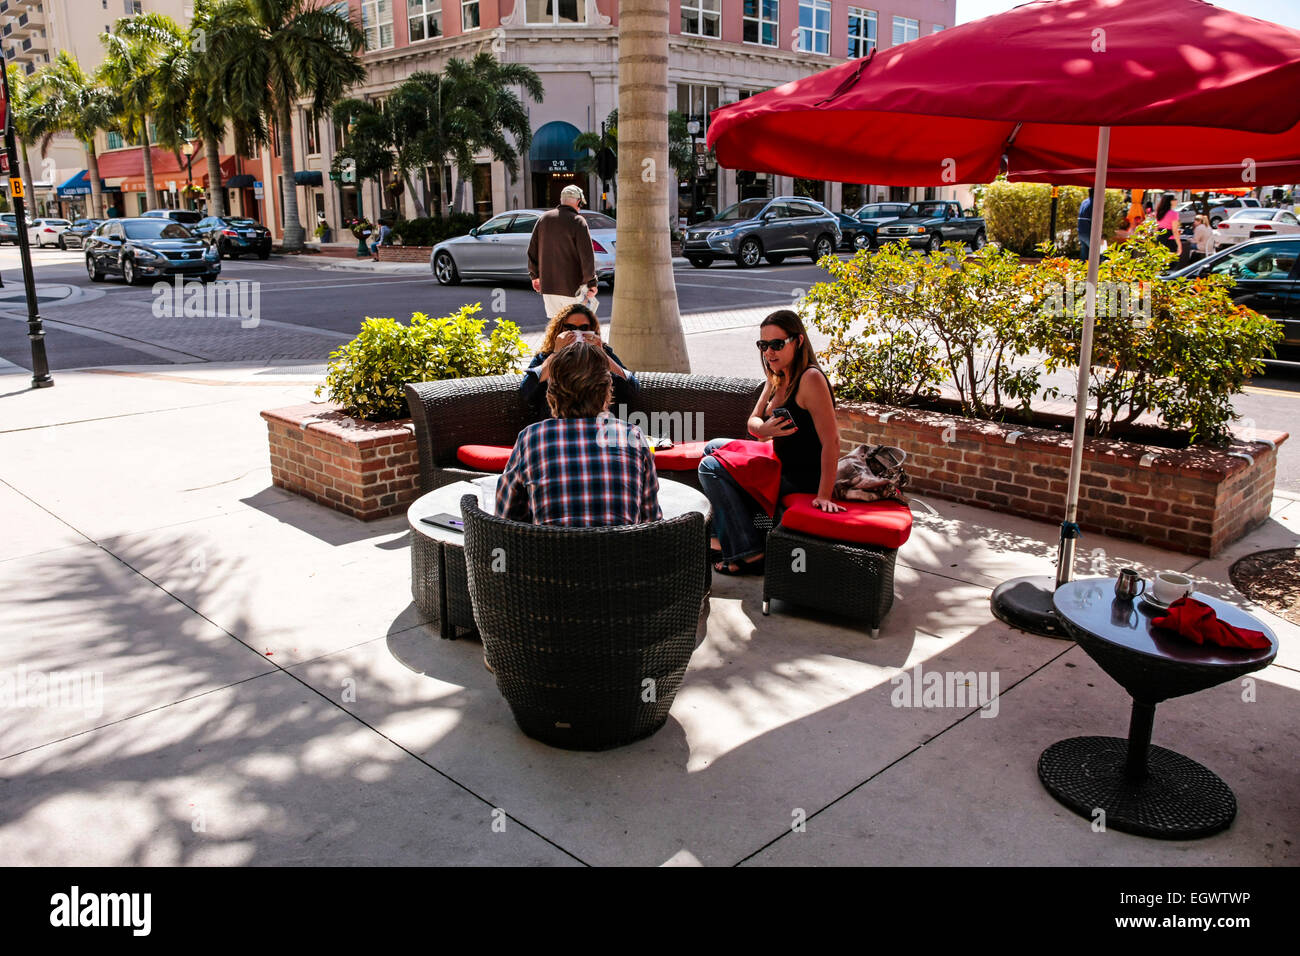 People relaxing outside in comfy chairs at a cafe/restaurant in downtown Sarasota during February - Stock Image